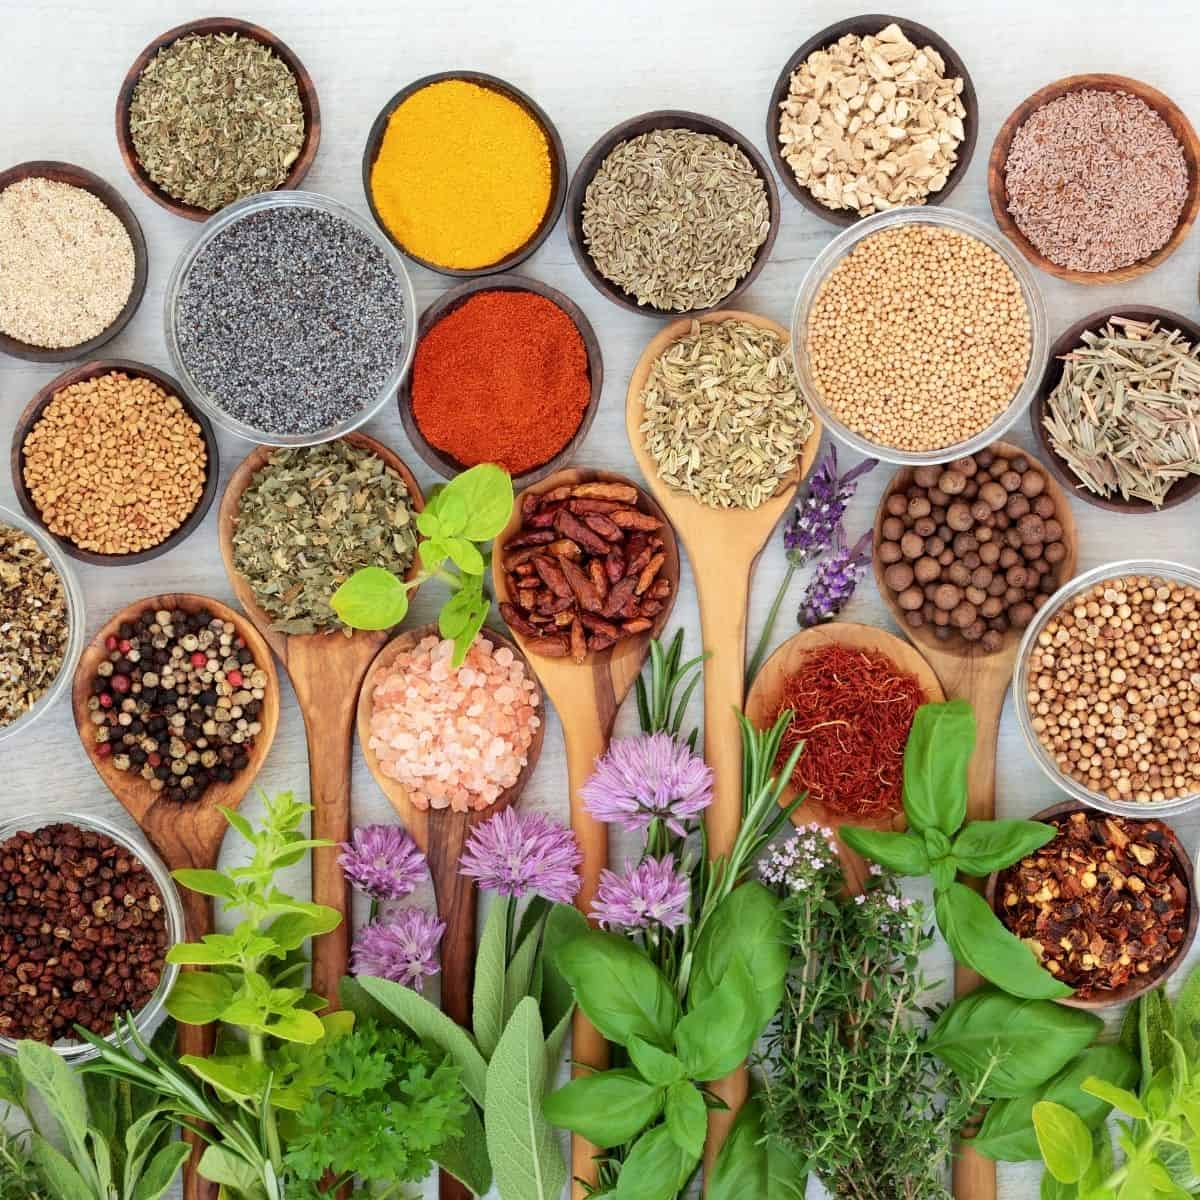 Image of herbs and spices that can be used on a vegan diet